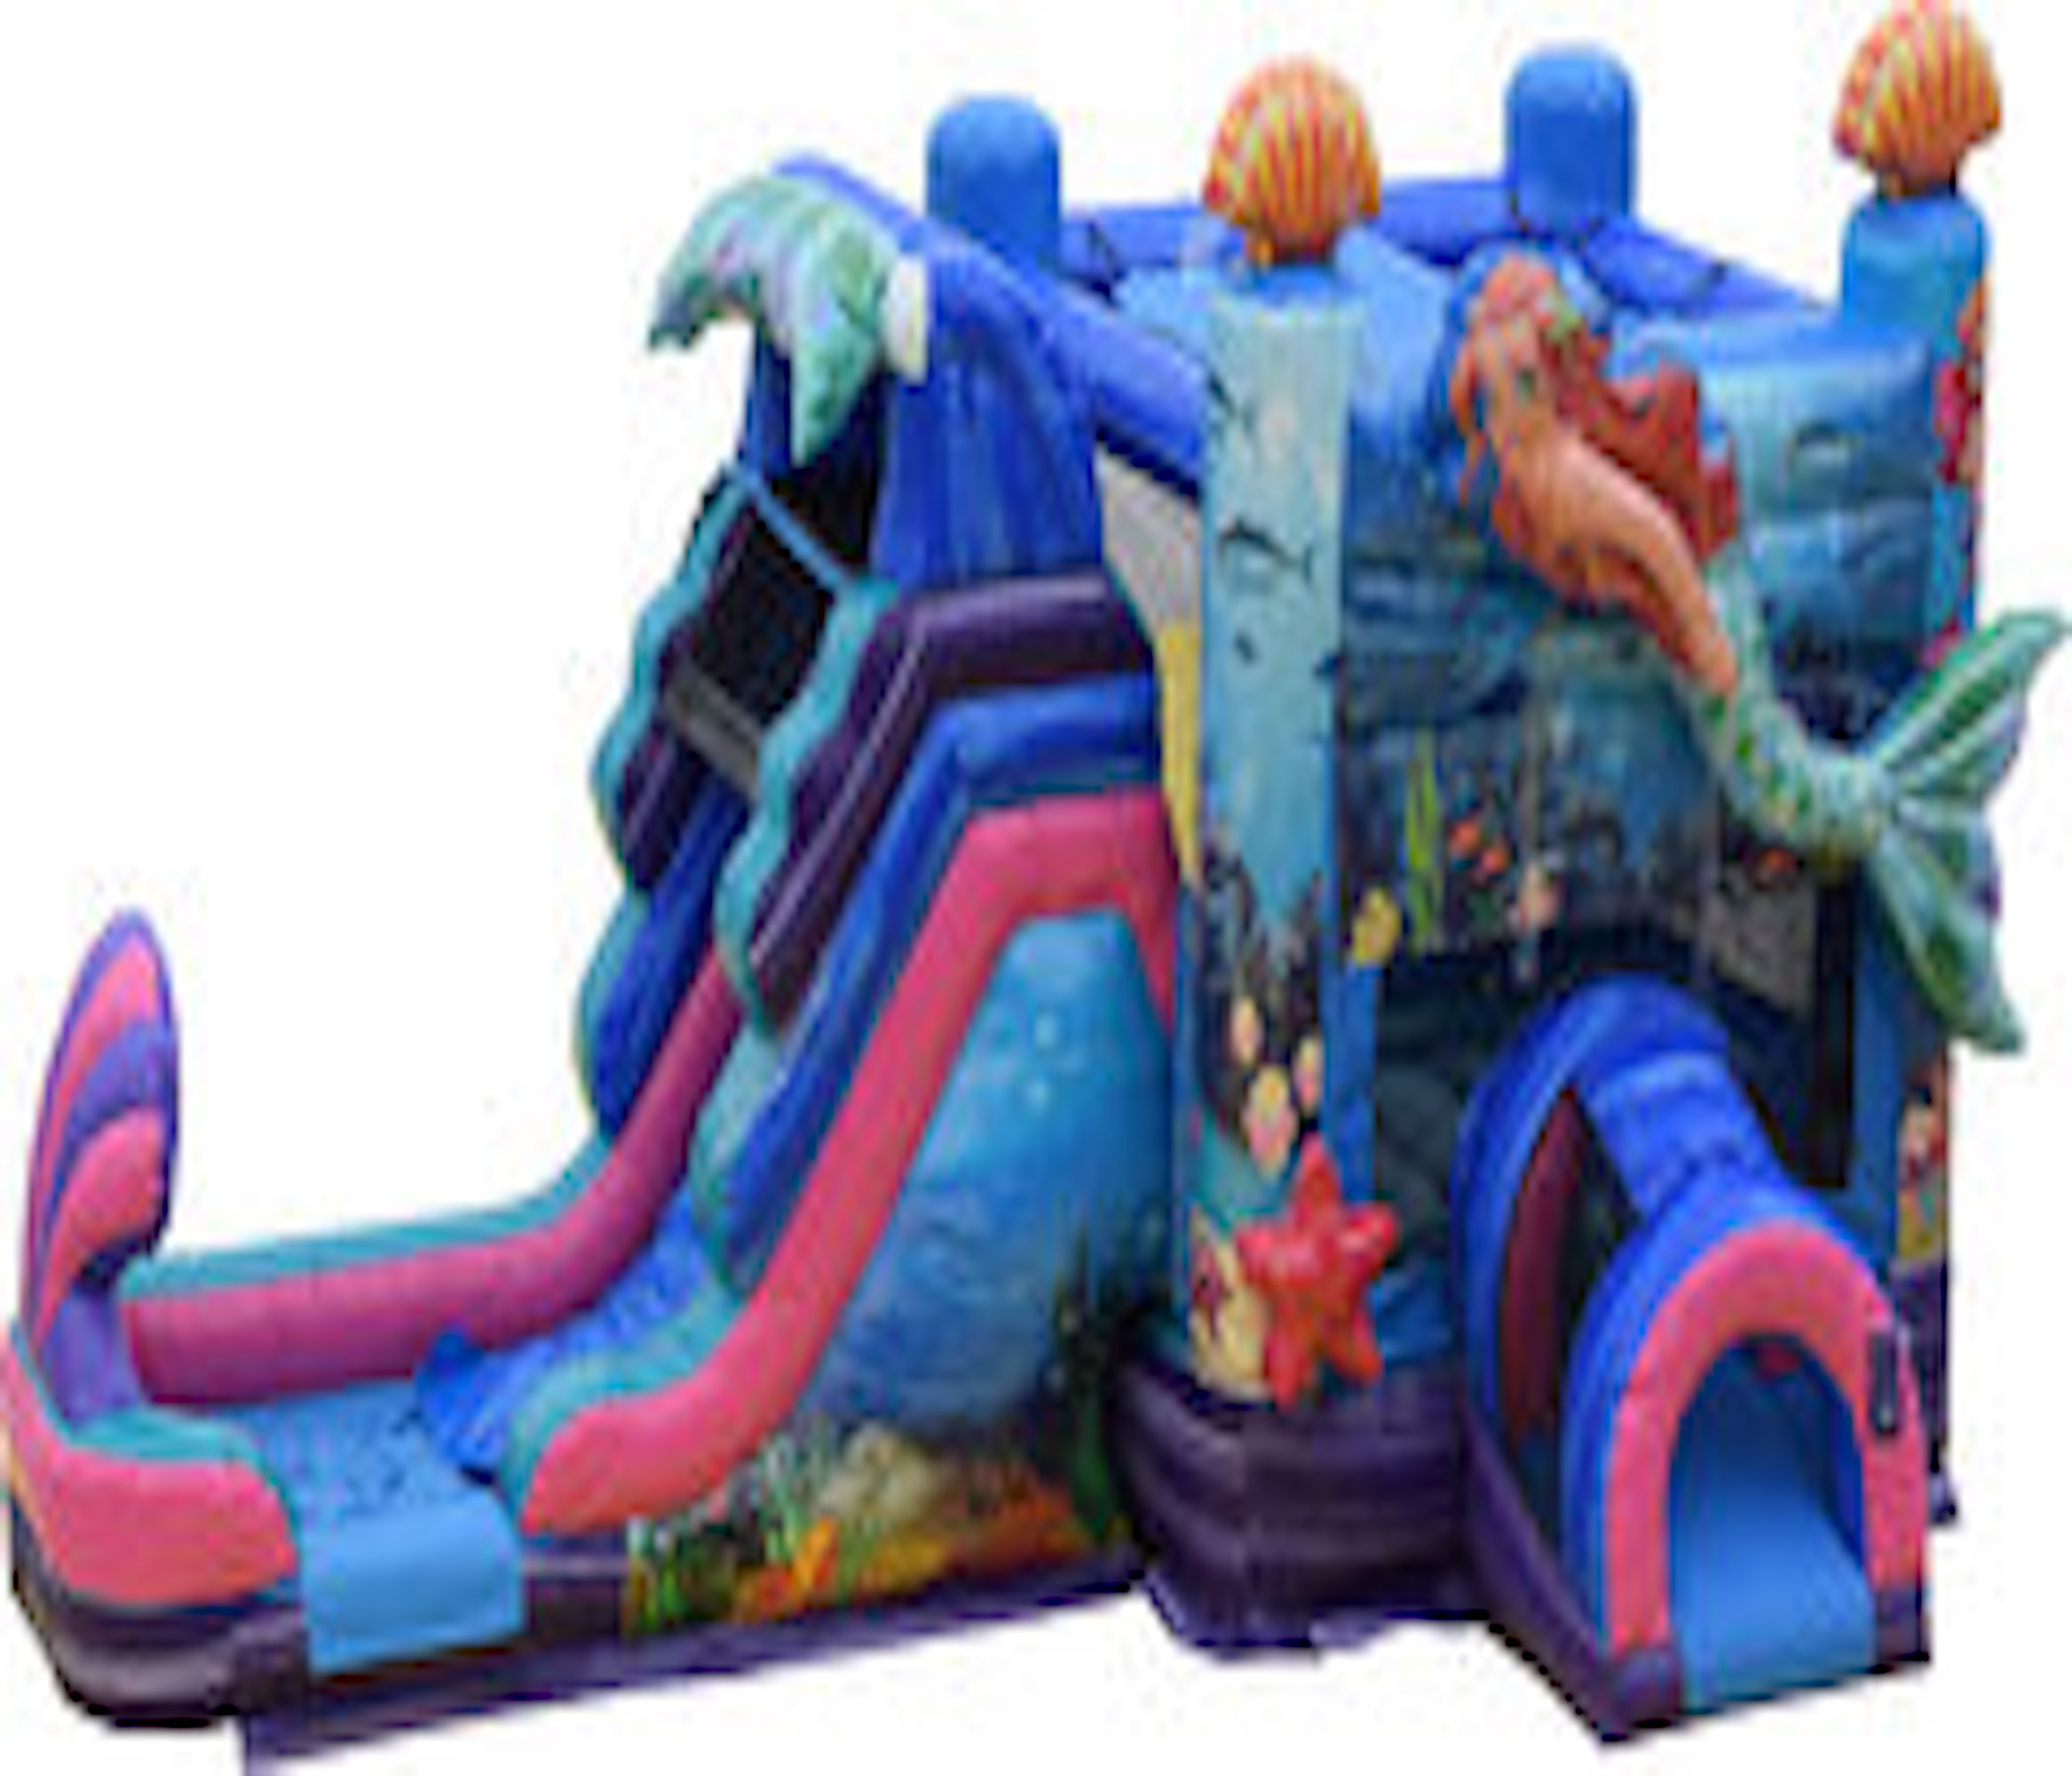 mermaid bounce house combo slide